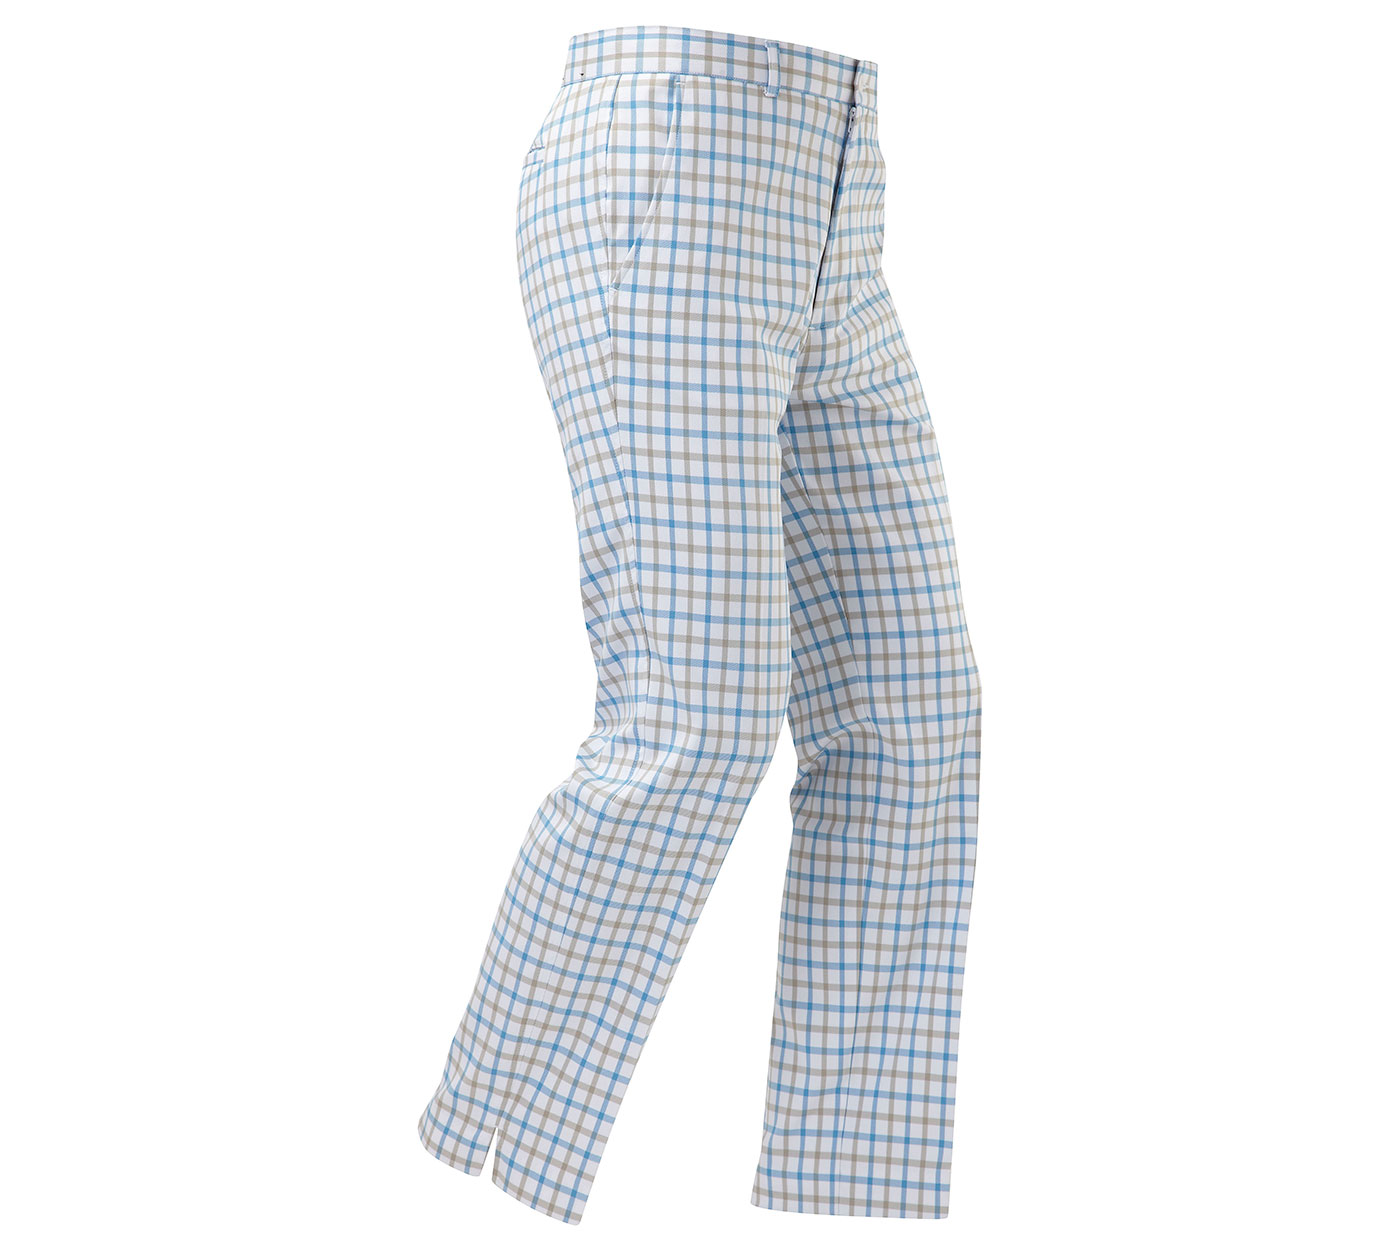 FootJoy Performance Plaid Trouser